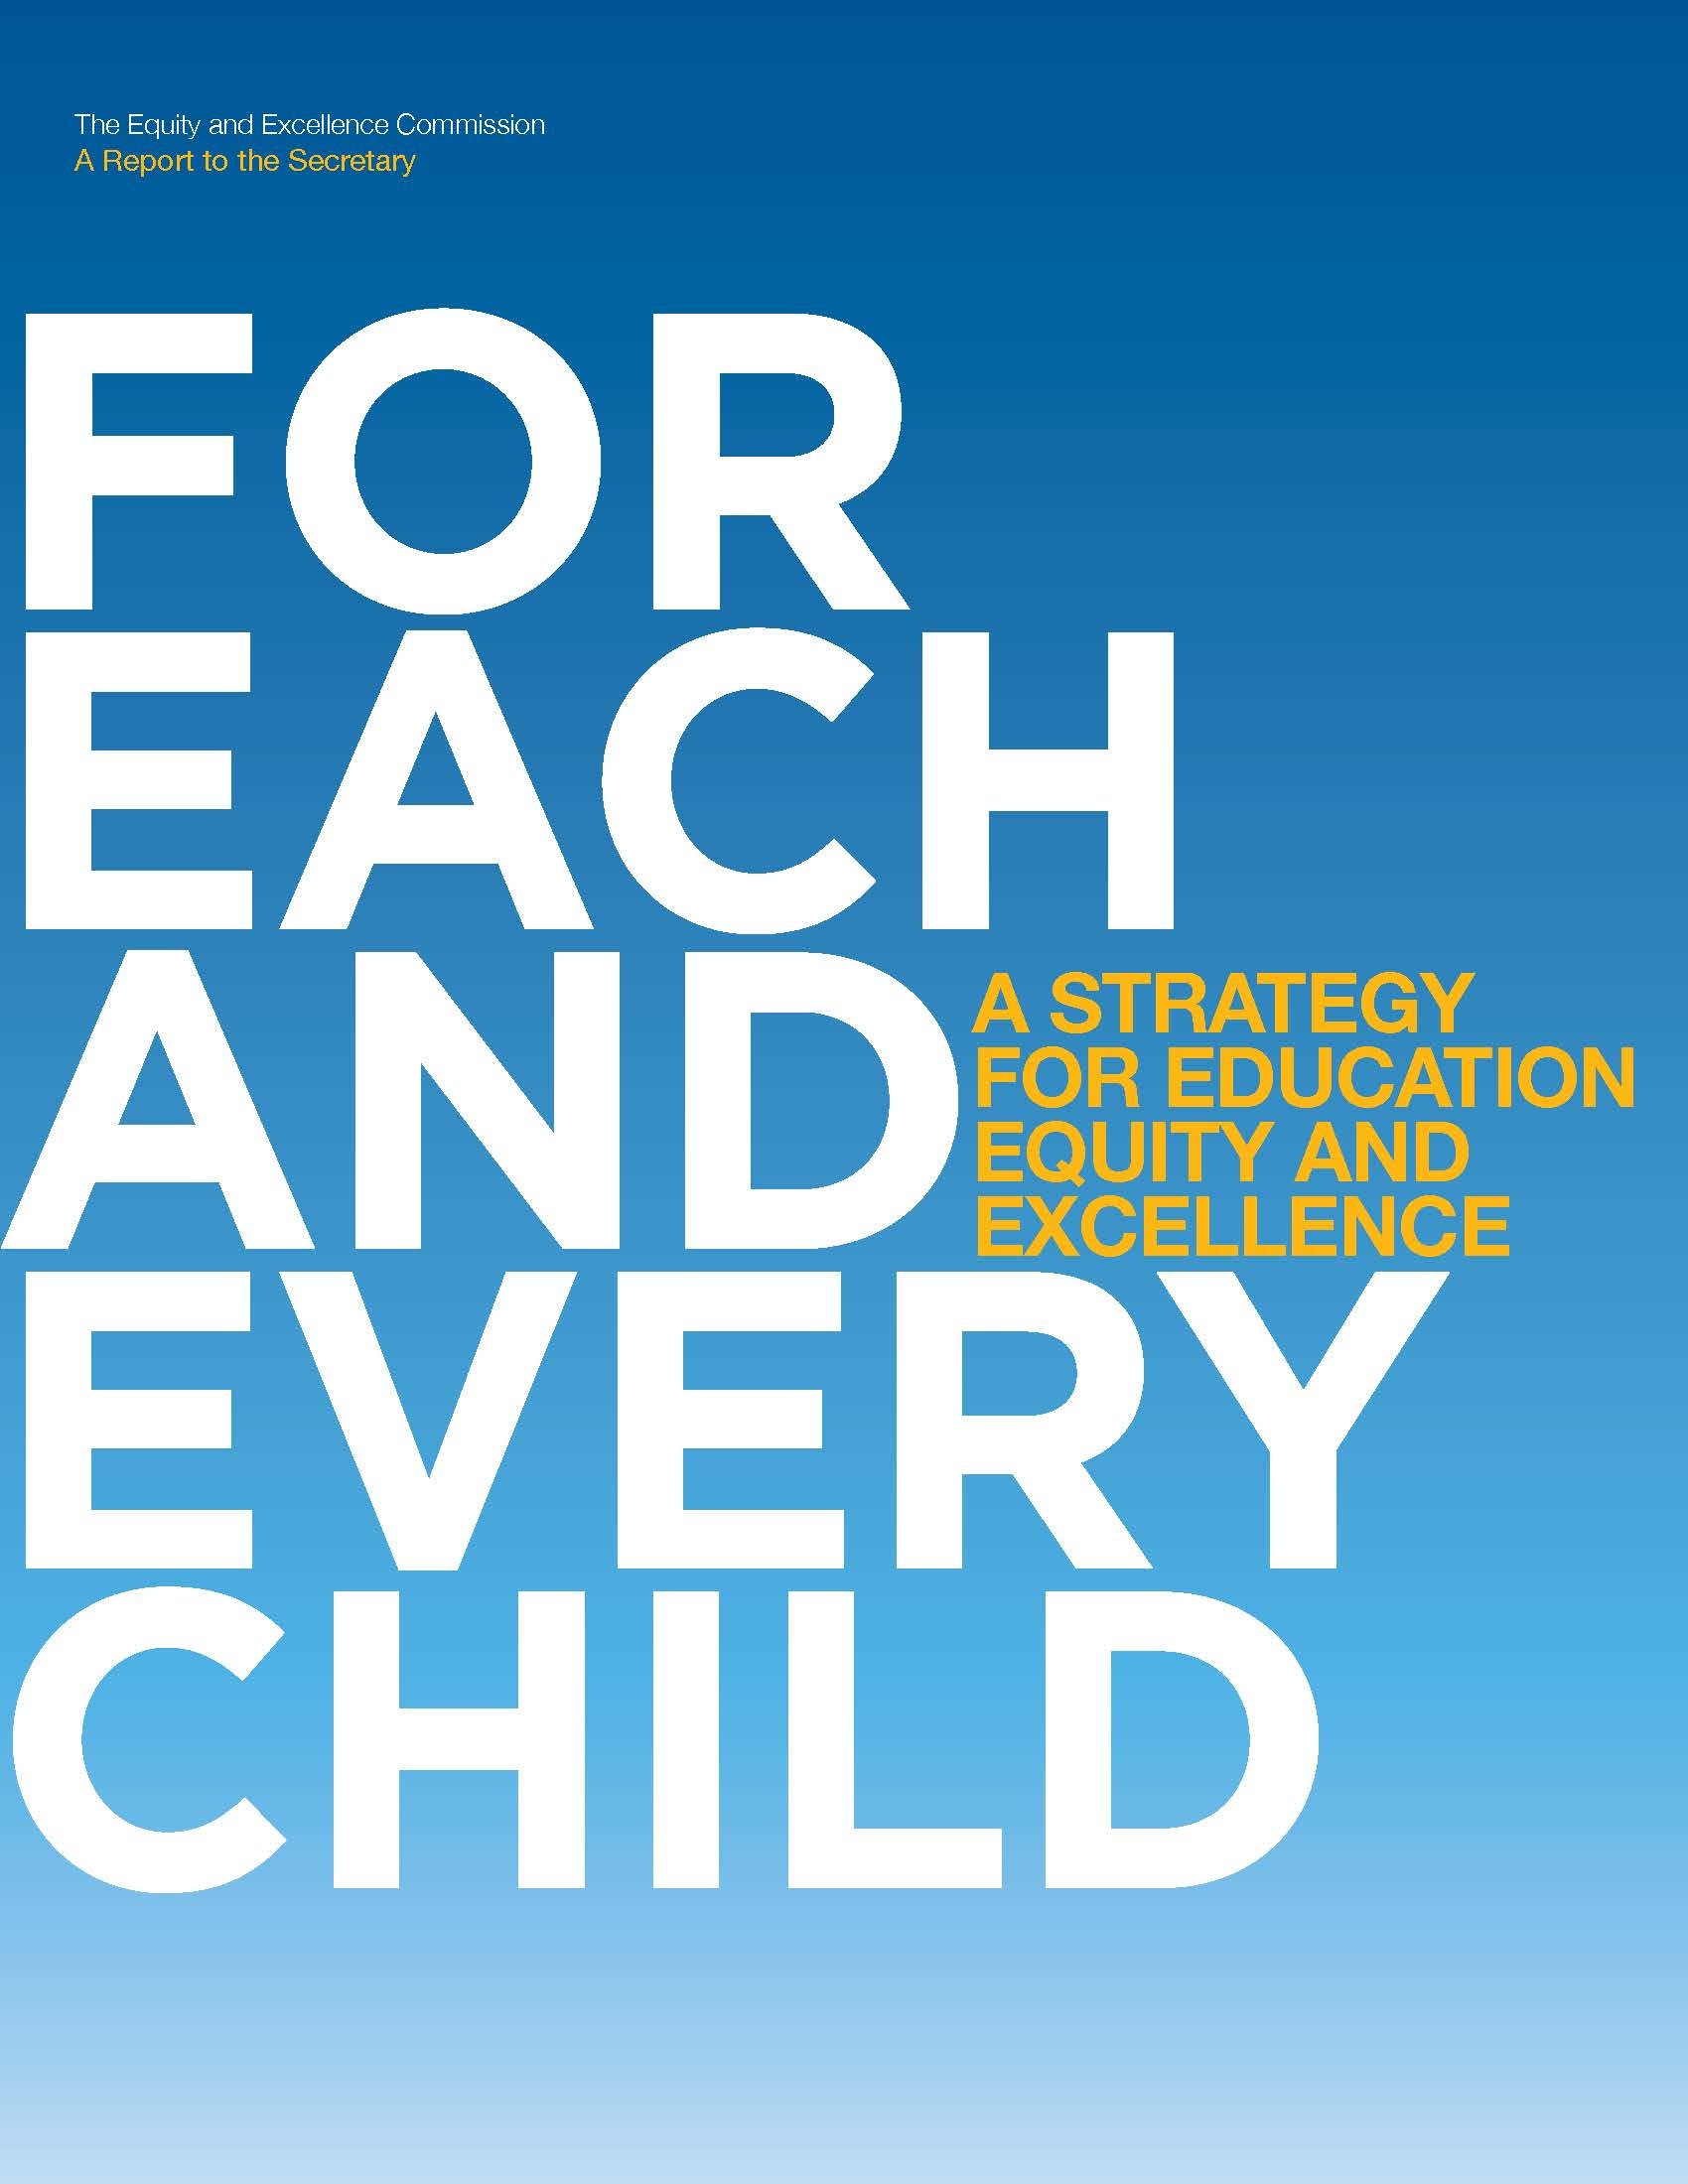 National Education Commission Calls for Sufficient Resources and Comprehensive Educational Opportunities for All Kids